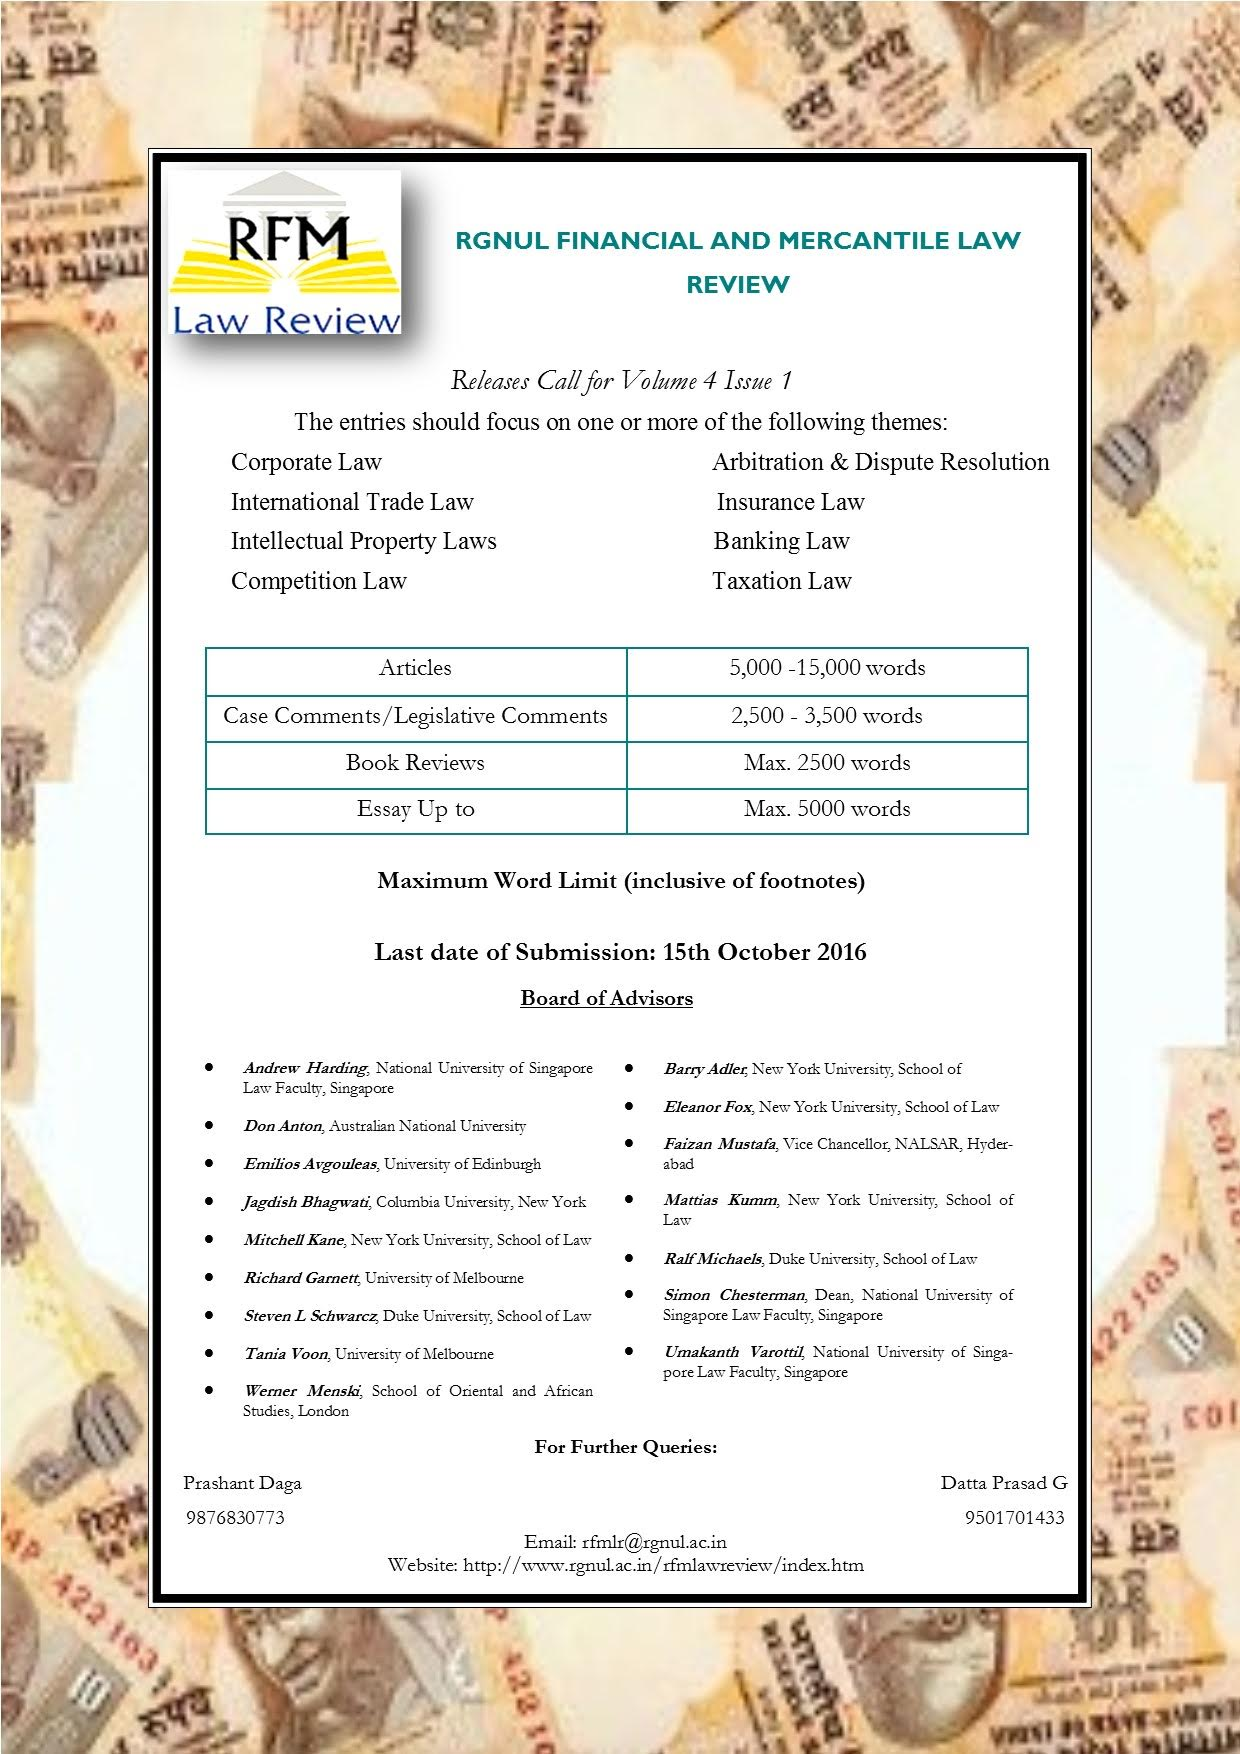 rgnul research paper call for papers rgnul financial and mercantile law review lawctopus